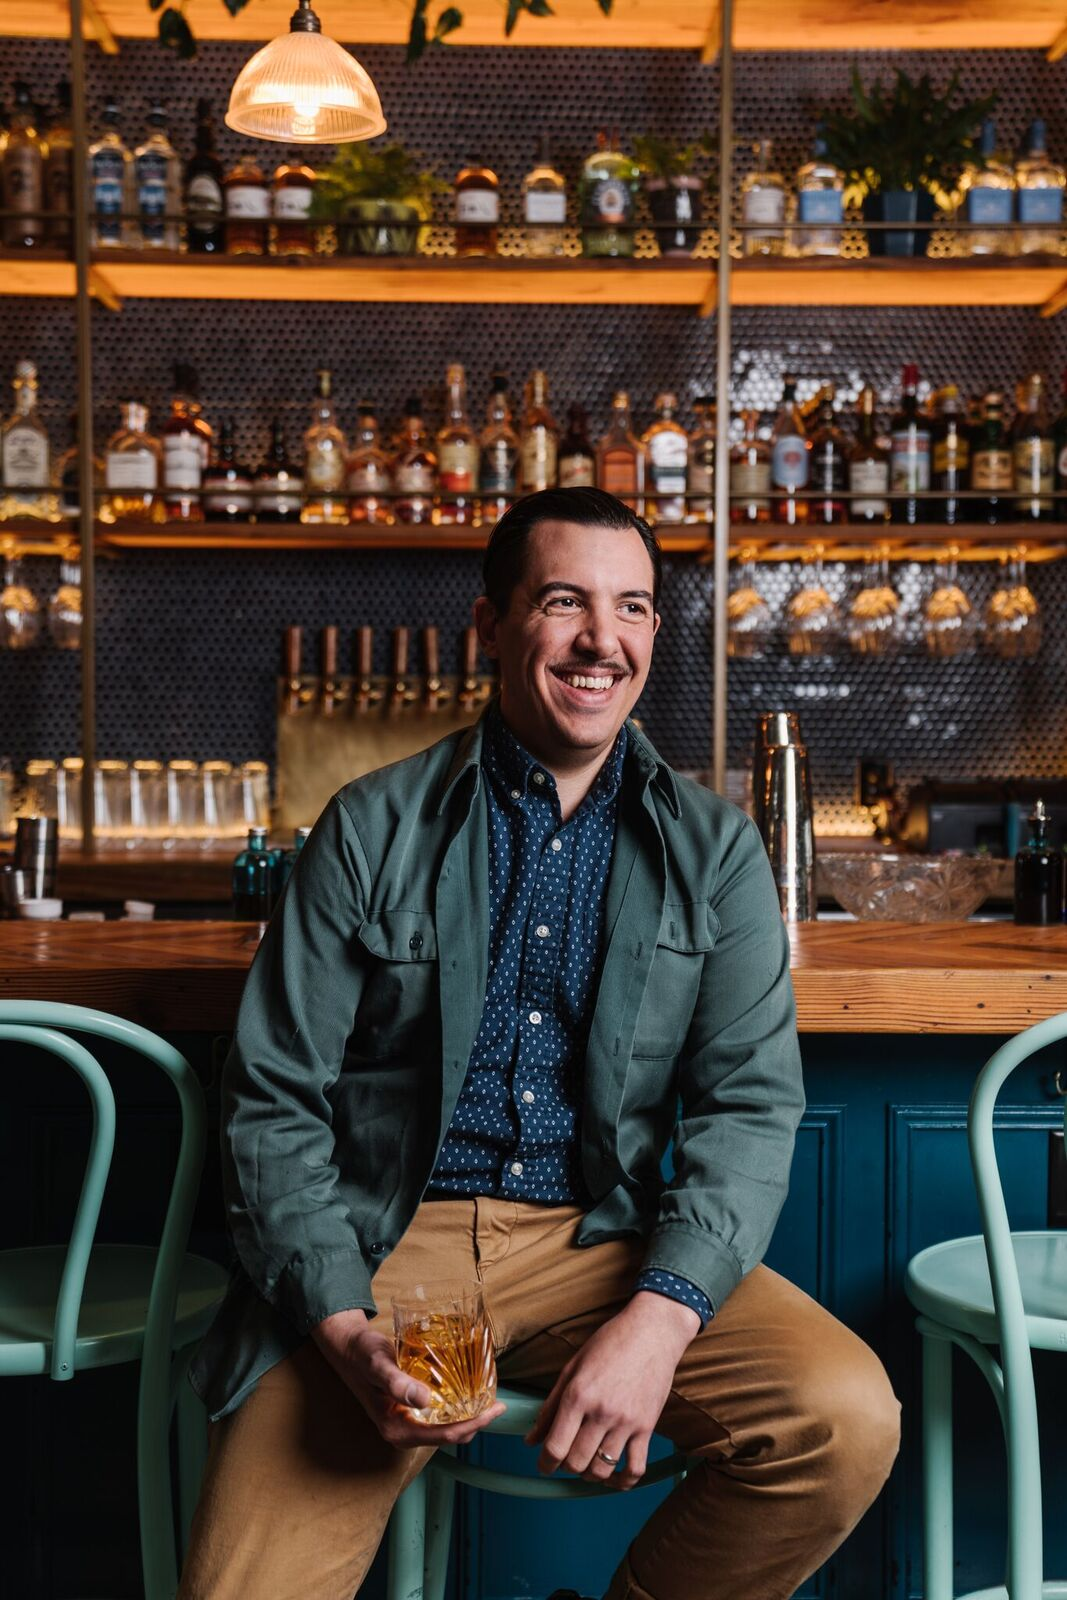 A photo of Watchman's co-owner Miles Macquarrie seated in a chair smiling in front of the bar